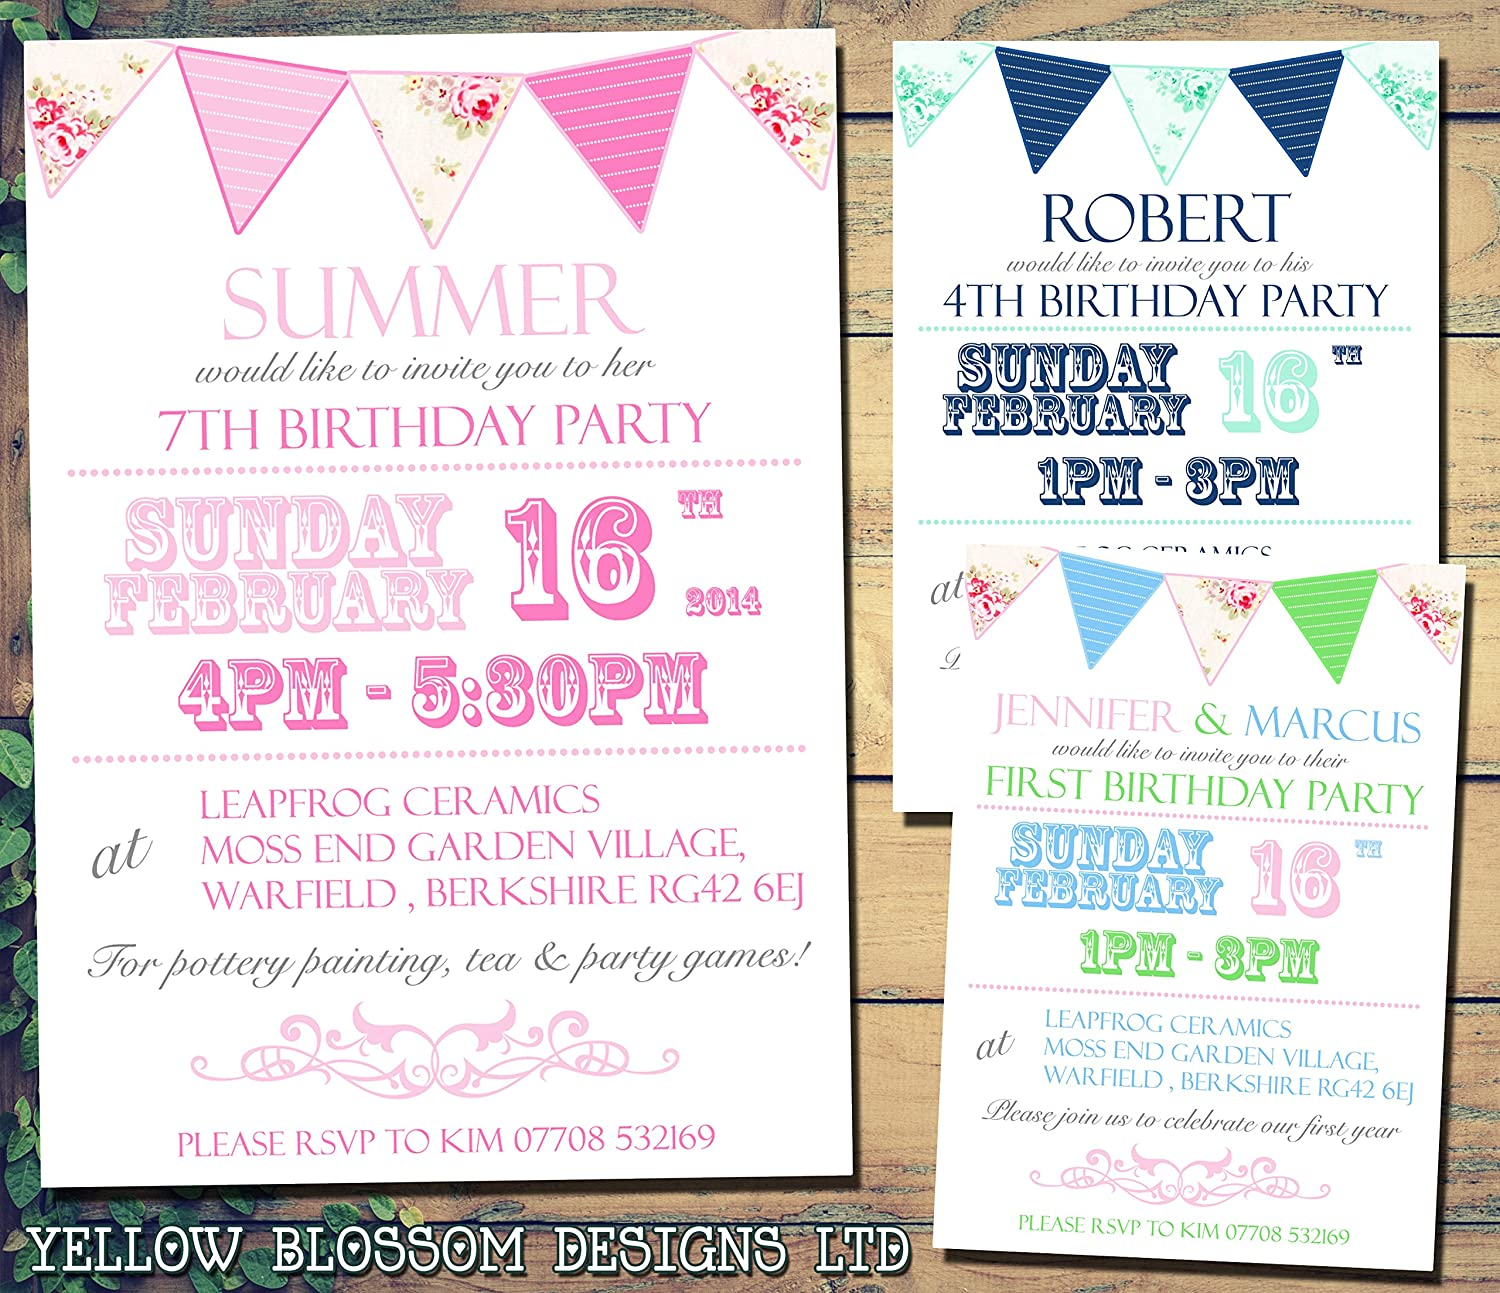 Personalised Childrens Birthday Invitations Printed Invites Boy Girl Joint Party Twins Unisex Bunting Shabby Chic 1st 2nd 3rd 4th 5th 6th 7th 8th 9th